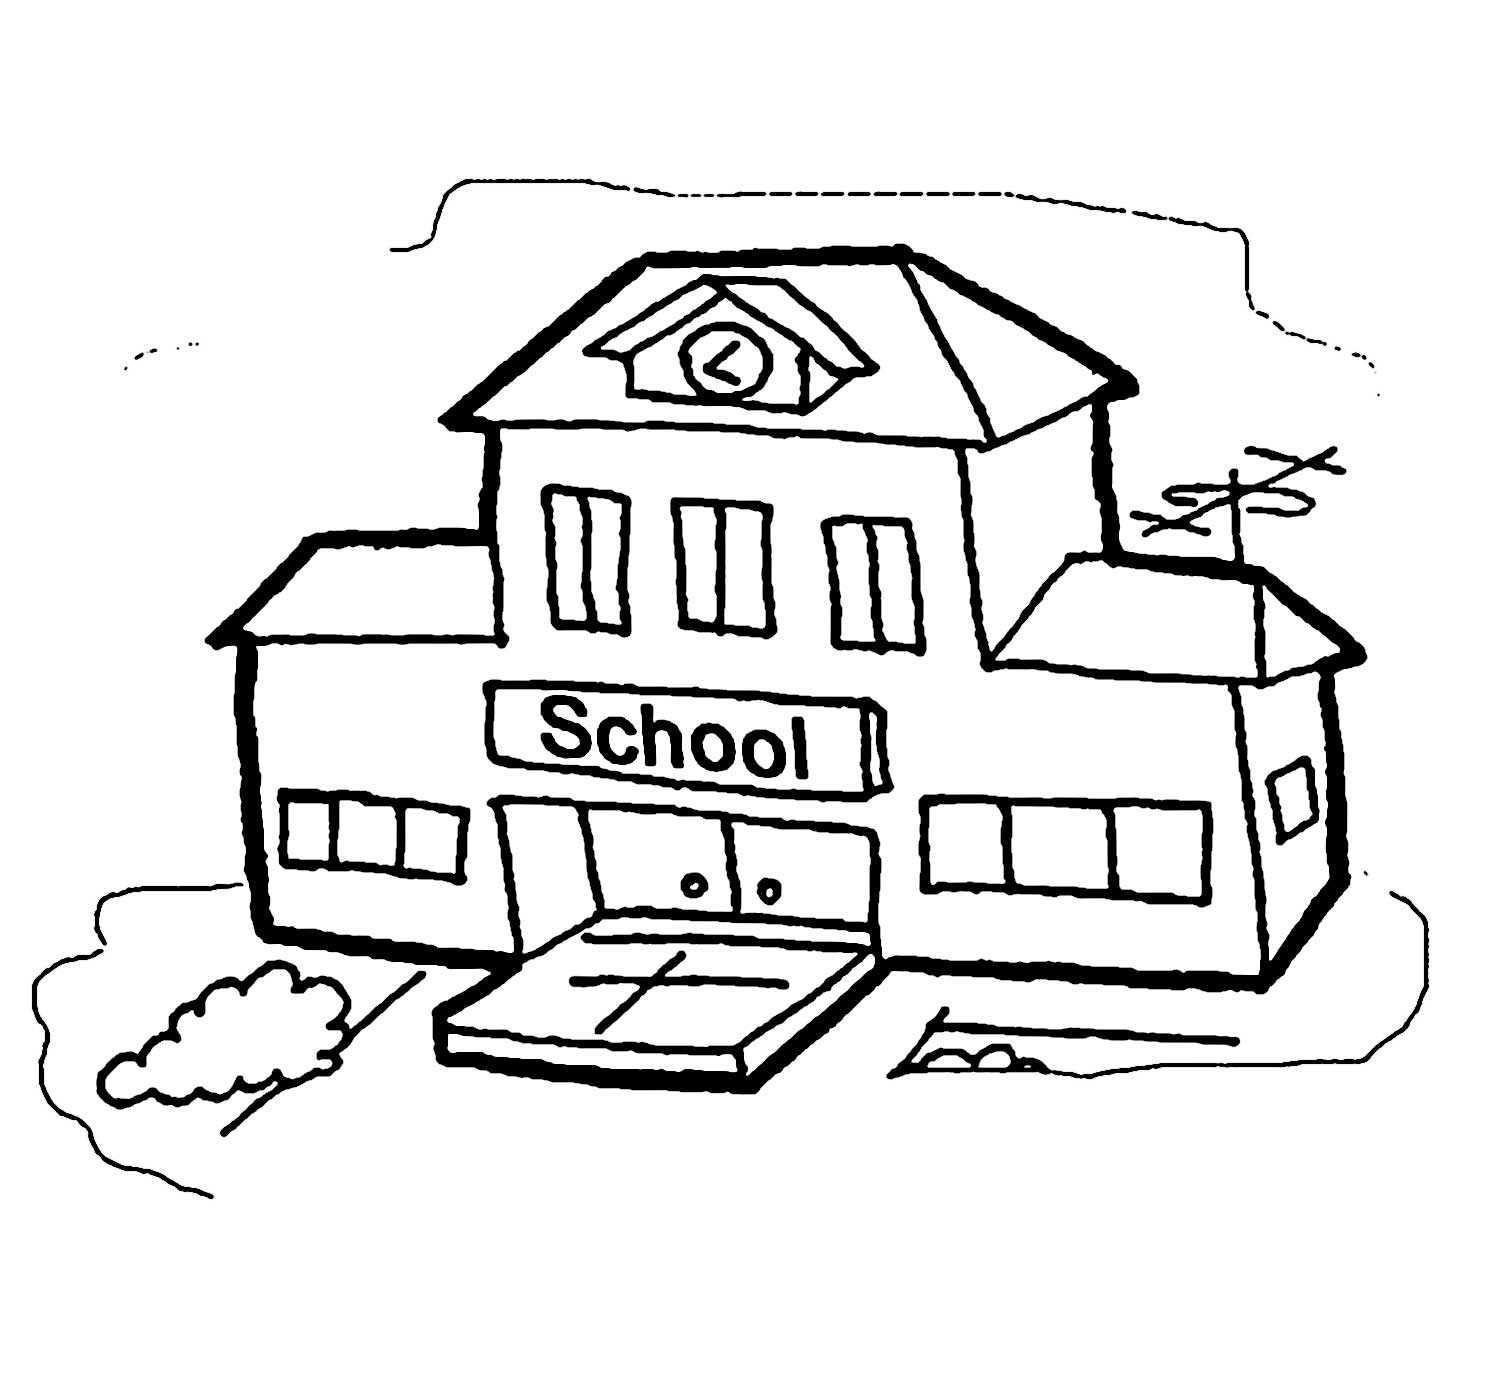 Coloring clipart school. Free printable building cergly